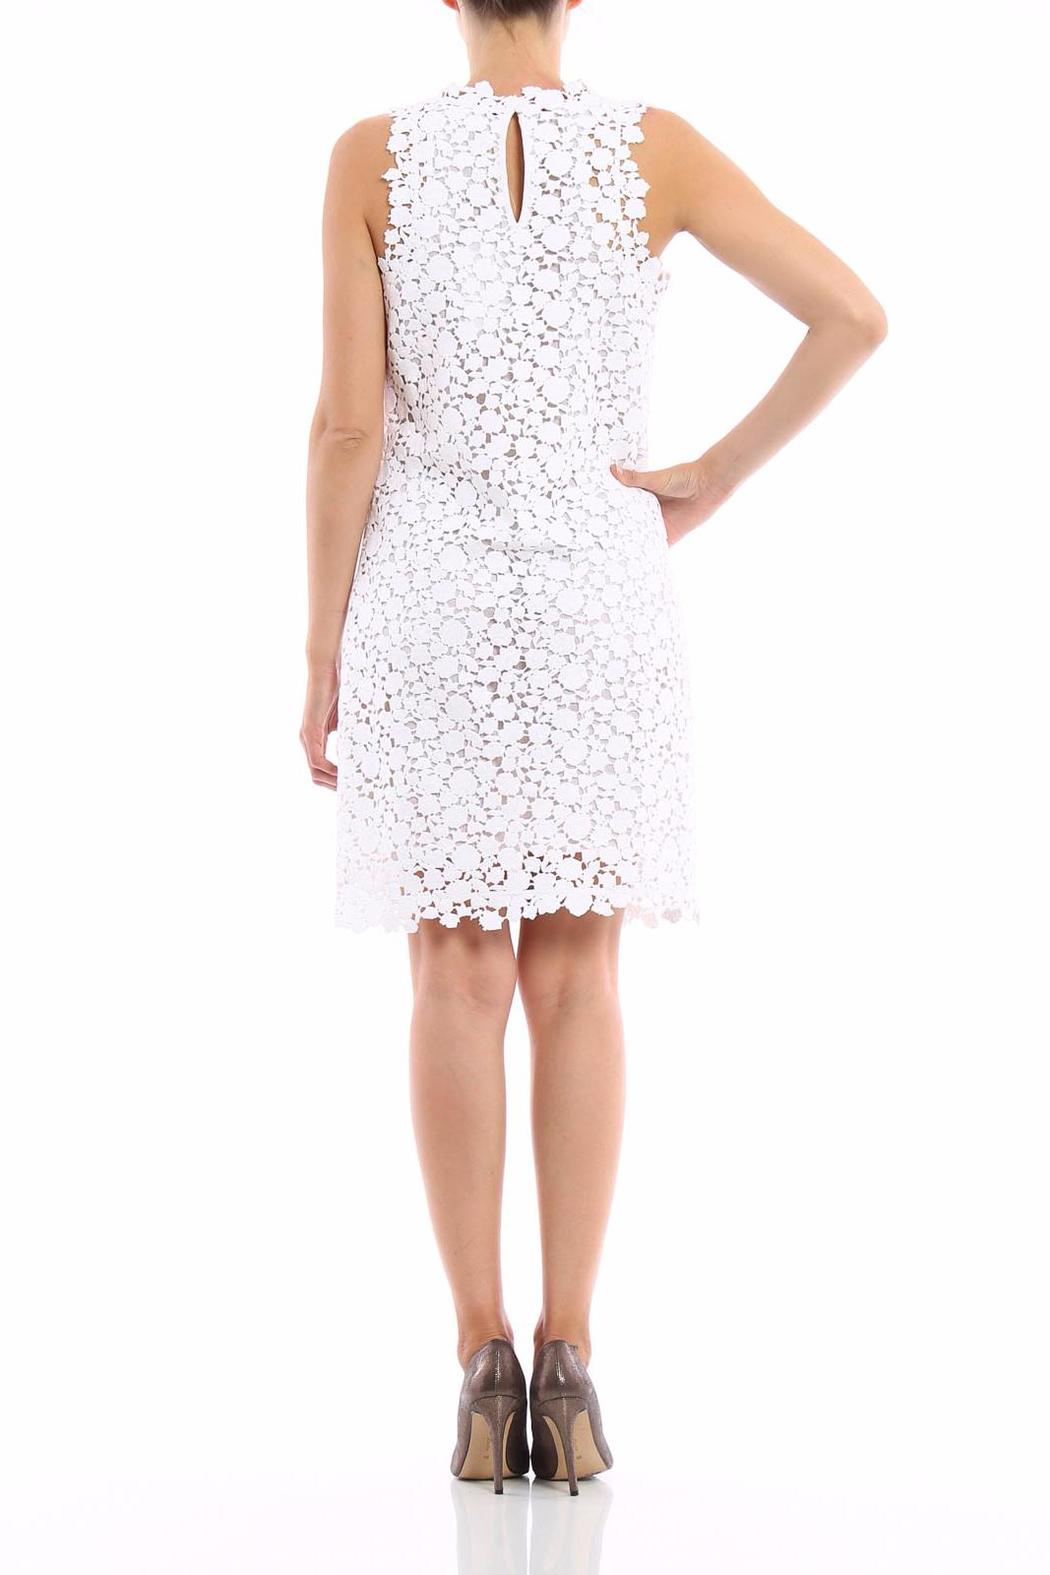 Michael by Michael Kors Floral Lace Shift Dress - Front Full Image